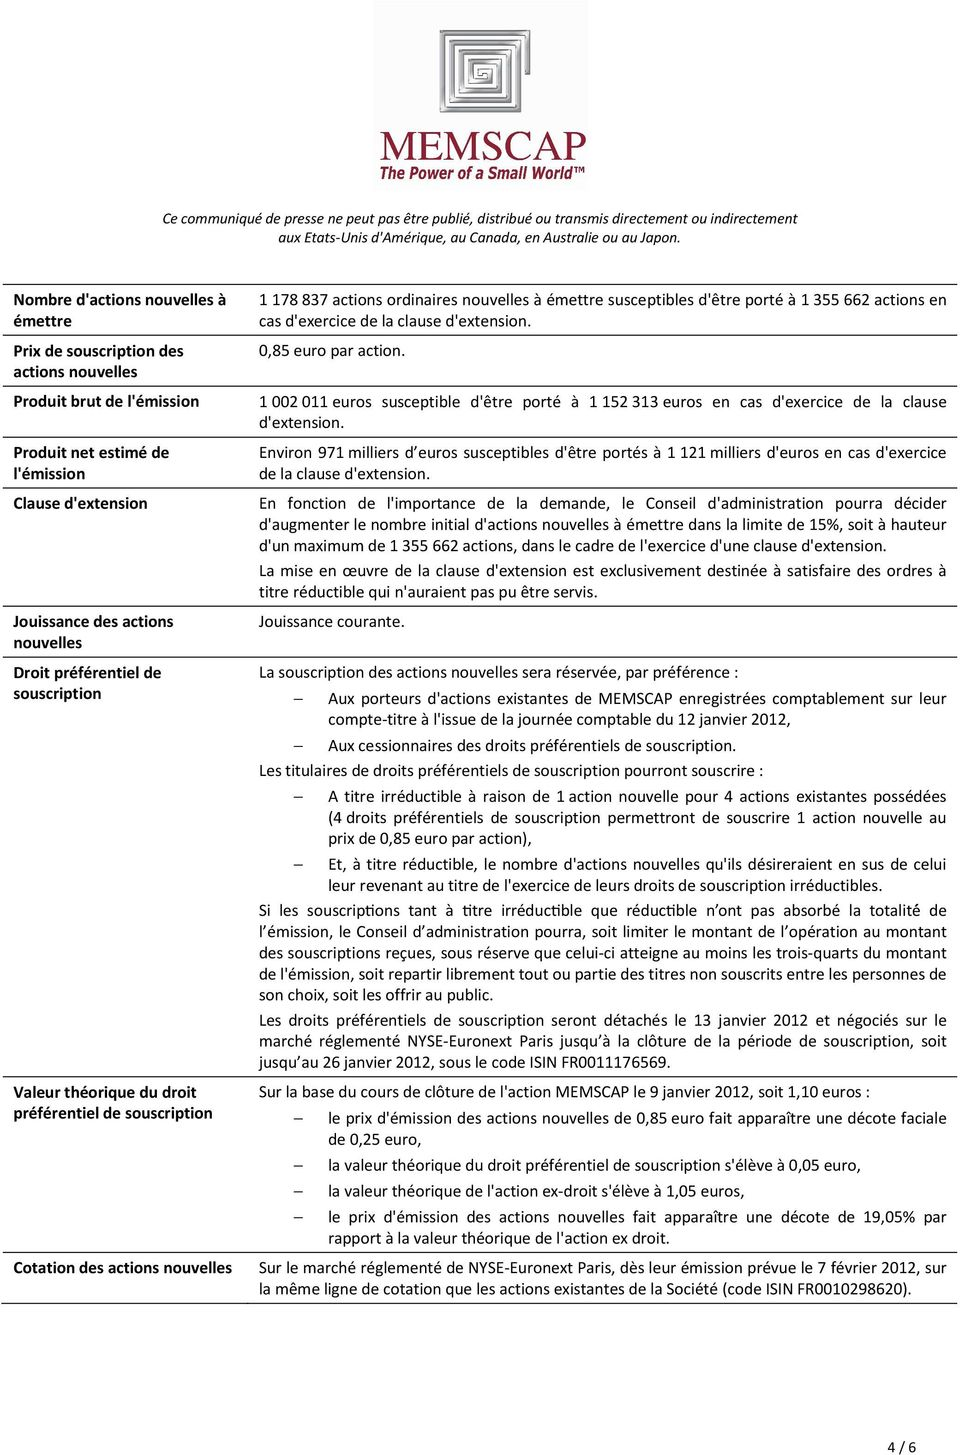 la clause d'extension. 0,85 euro par action. 1 002 011 euros susceptible d'être porté à 1 152 313 euros en cas d'exercice de la clause d'extension.